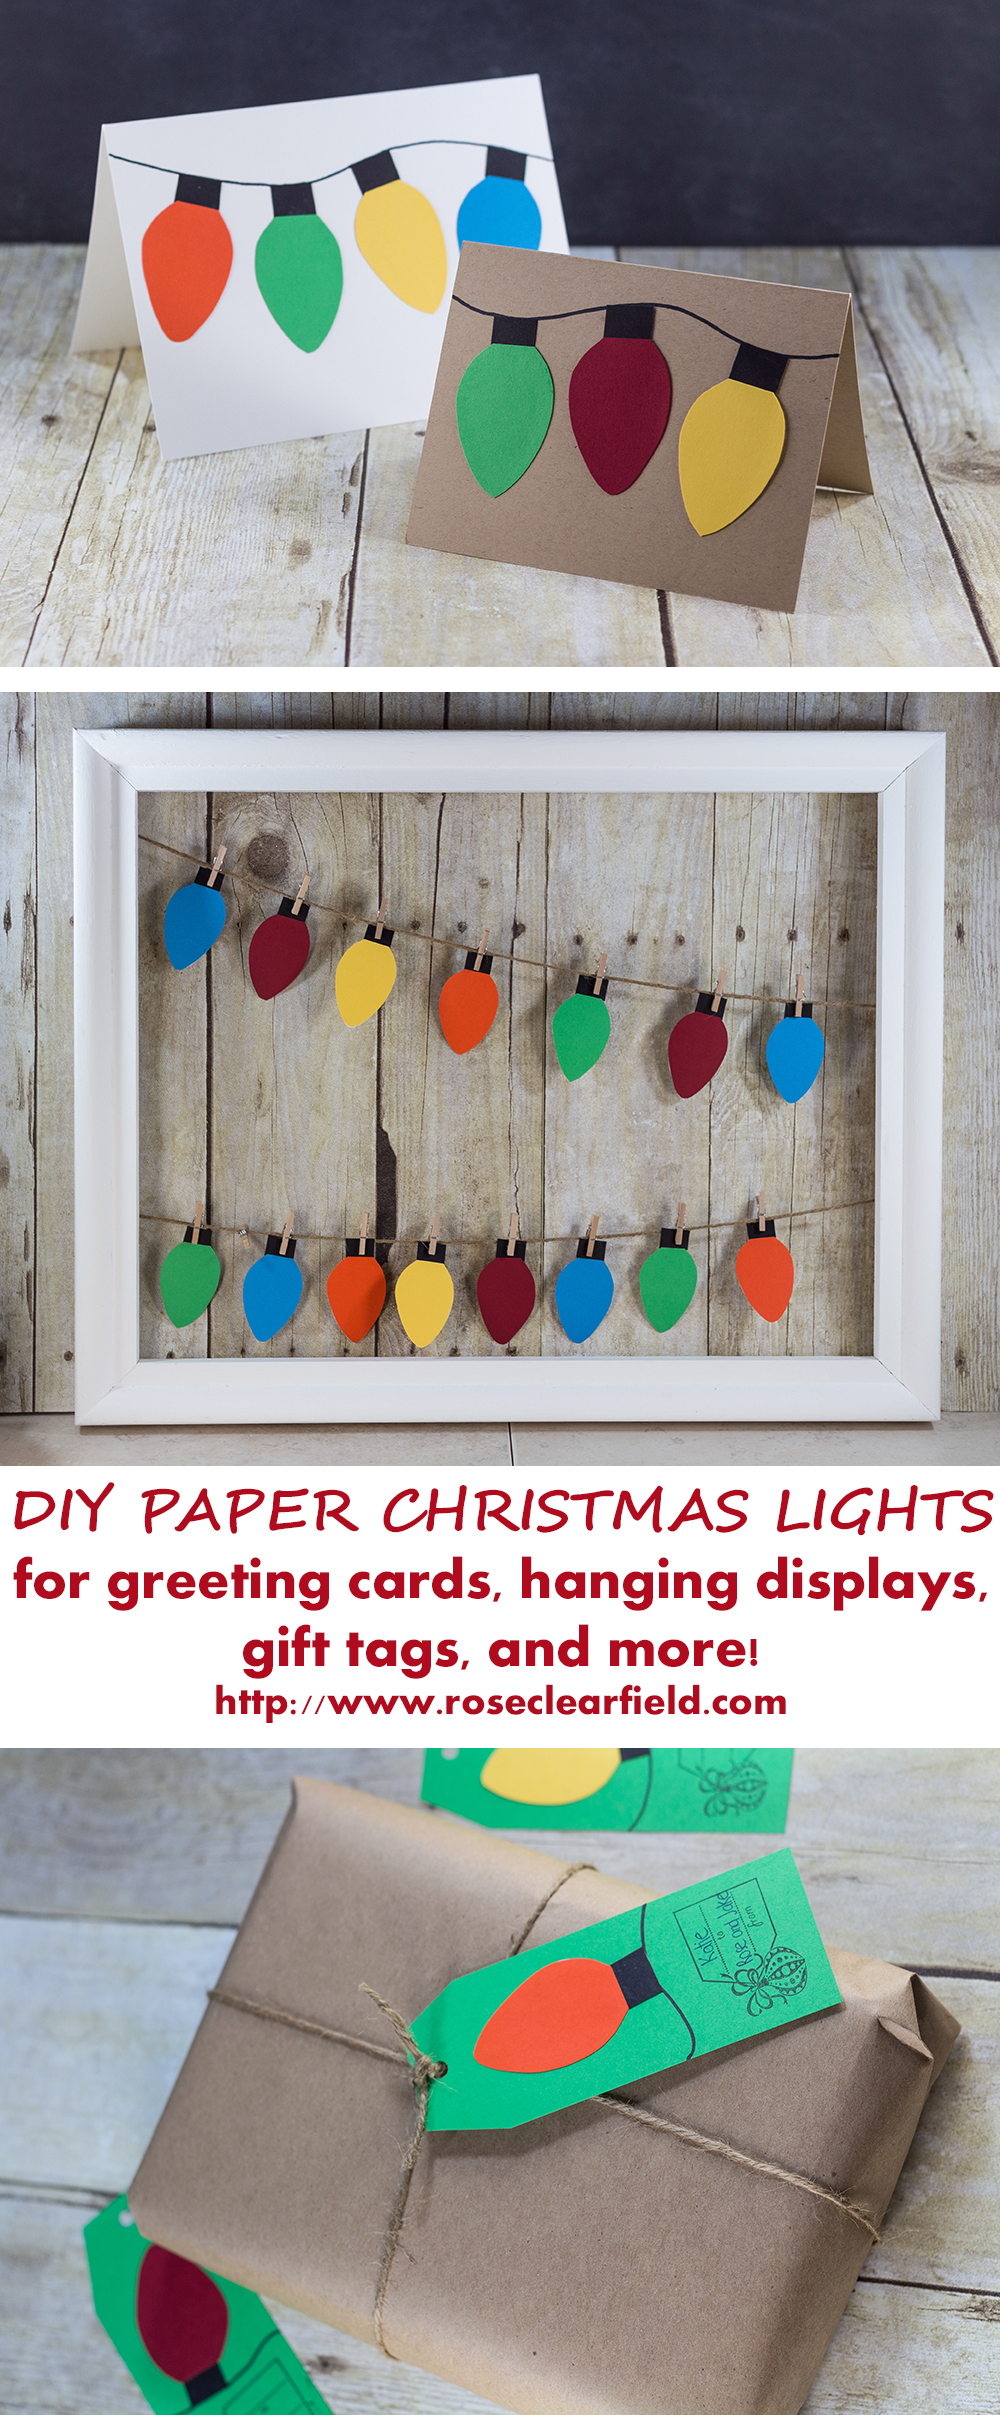 DIY paper Christmas lights holiday craft ideas. Make greeting cards, garlands, gift tags, and much more! | https://www.roseclearfield.com